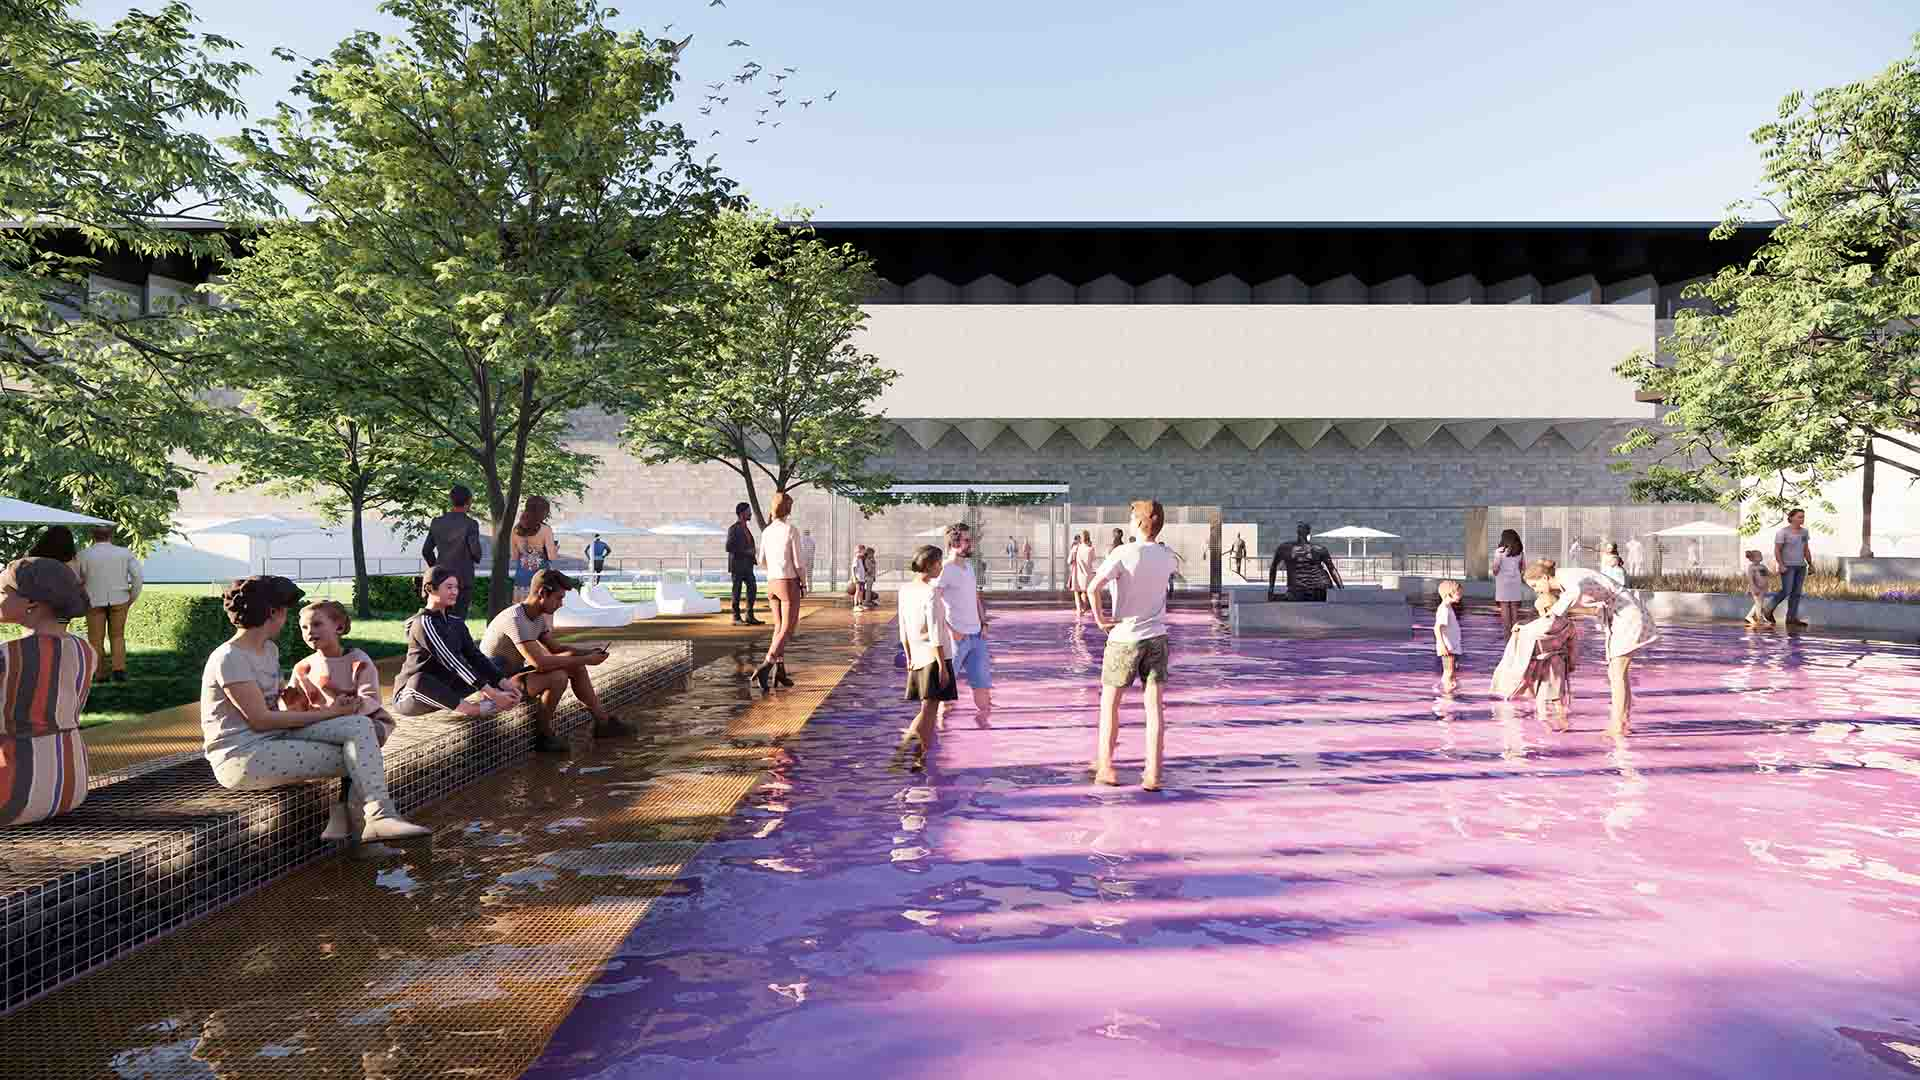 The National Gallery of Victoria's Garden Is Getting a New Pink Pond That You Can Wade Through